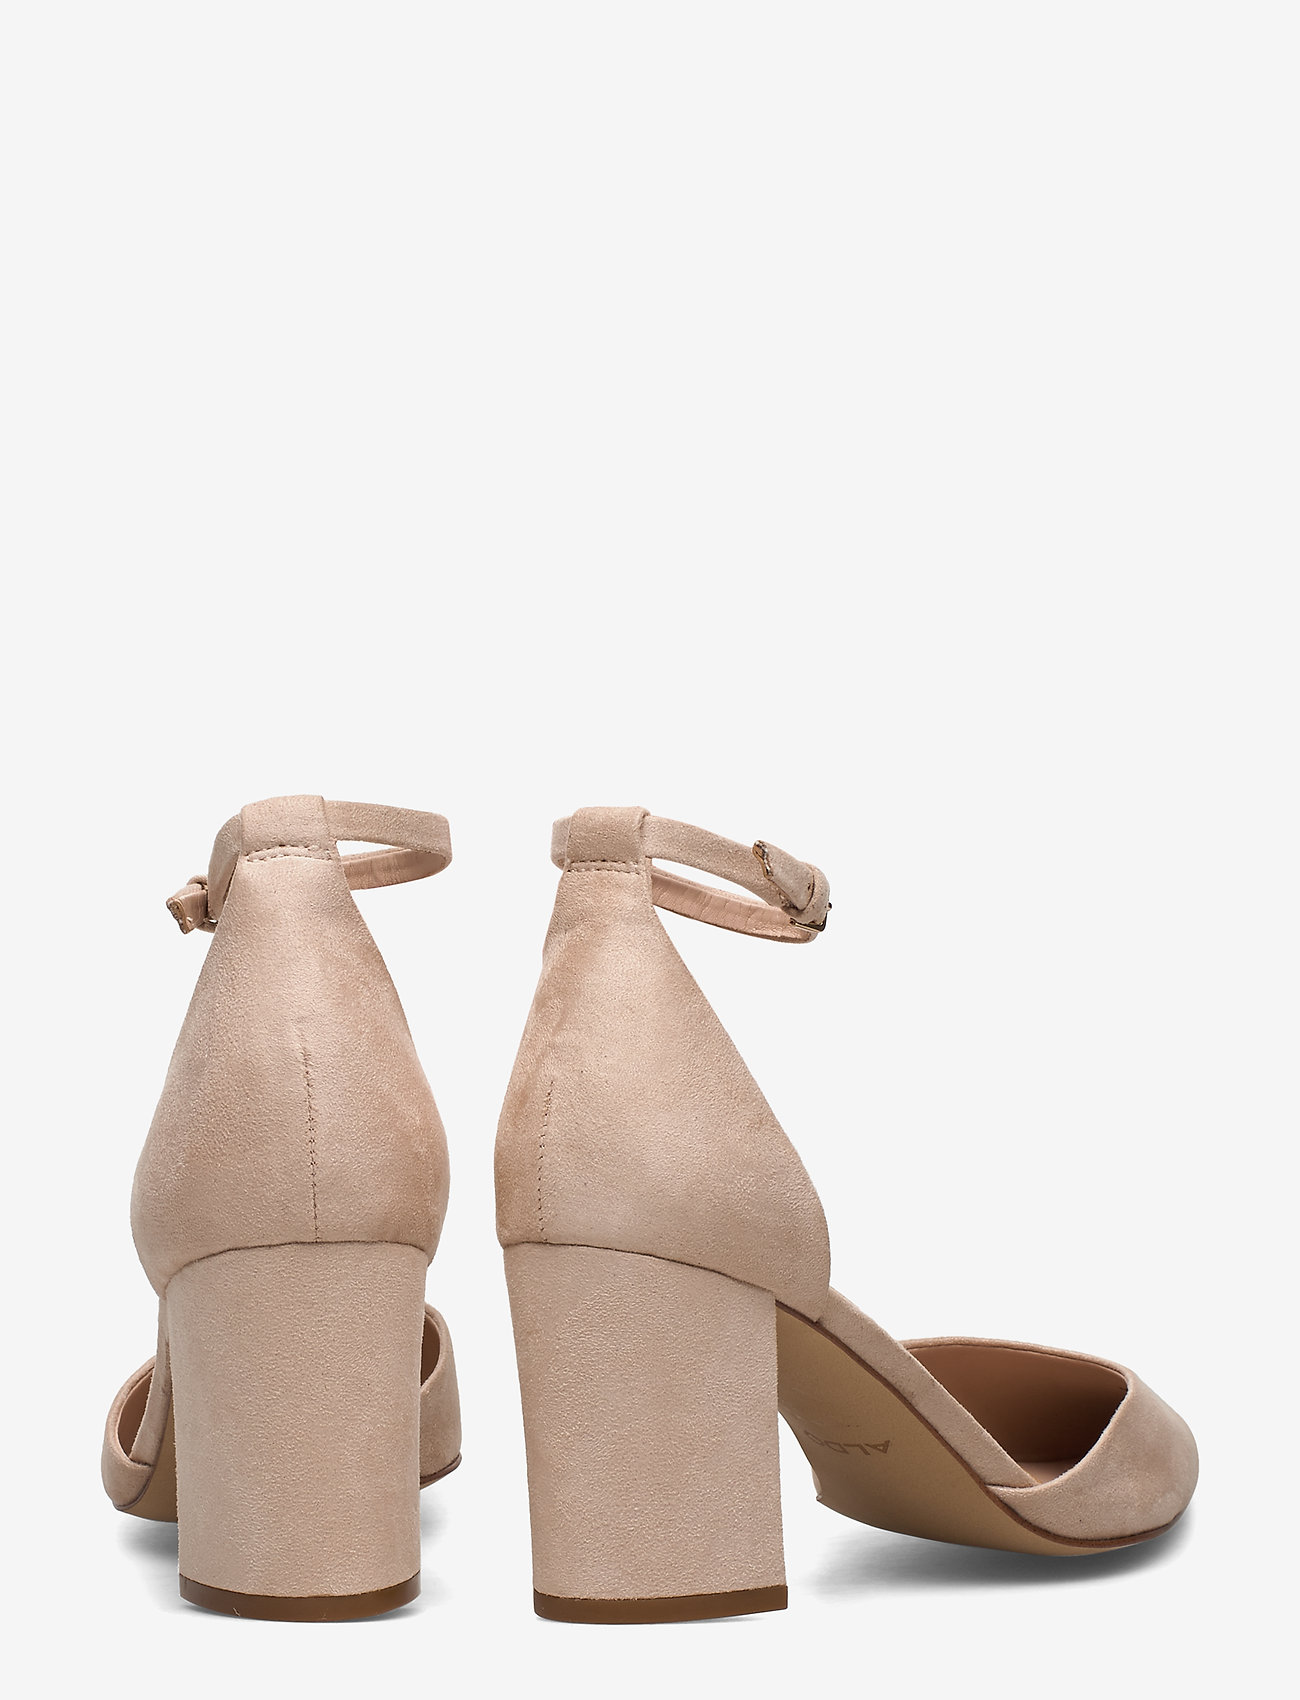 Amarna (Light Pink) (269.40 kr) - Aldo